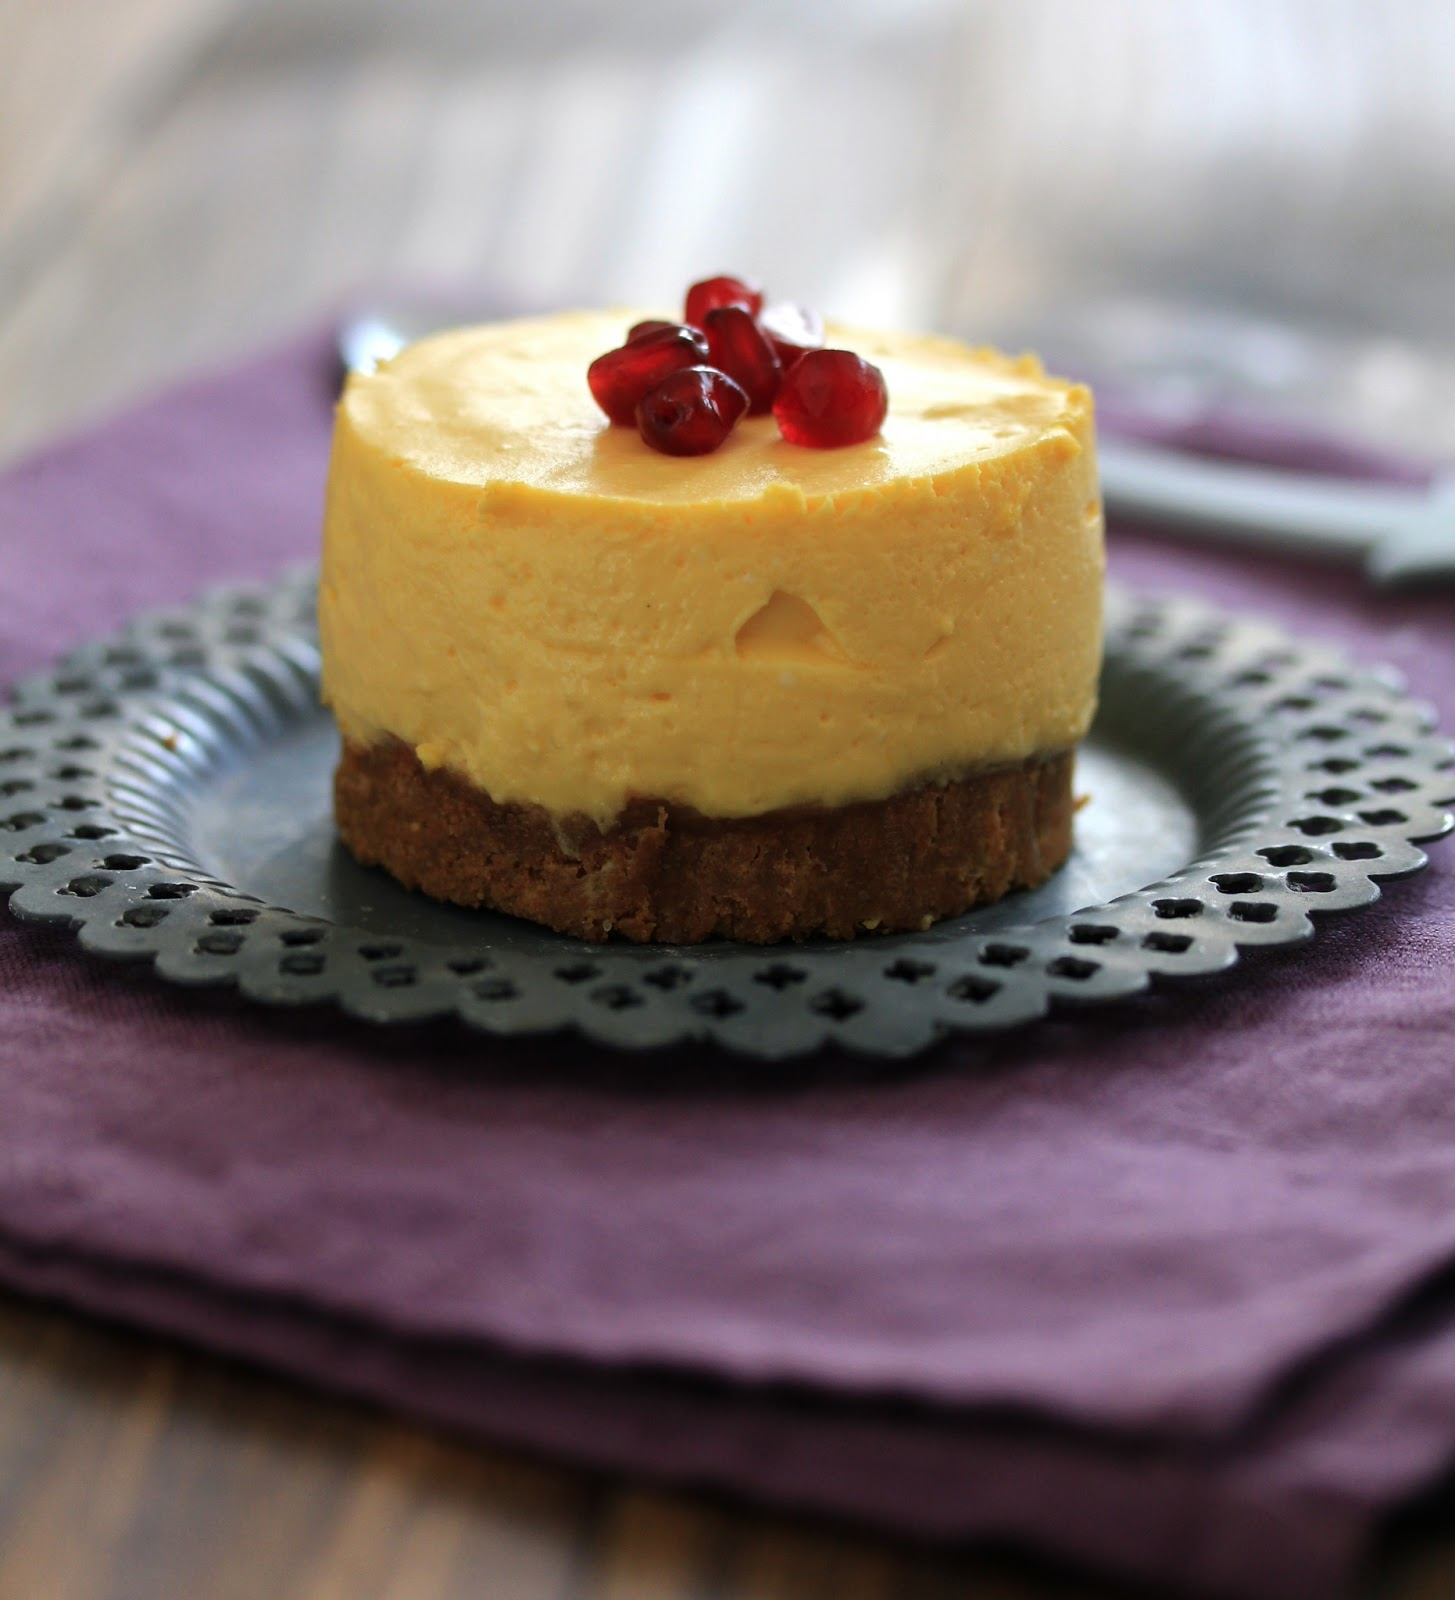 Cheesecake individuel mangue citron et sp culoos sans cuisson ideoz voyages - Cheesecake sans cuisson speculoos ...